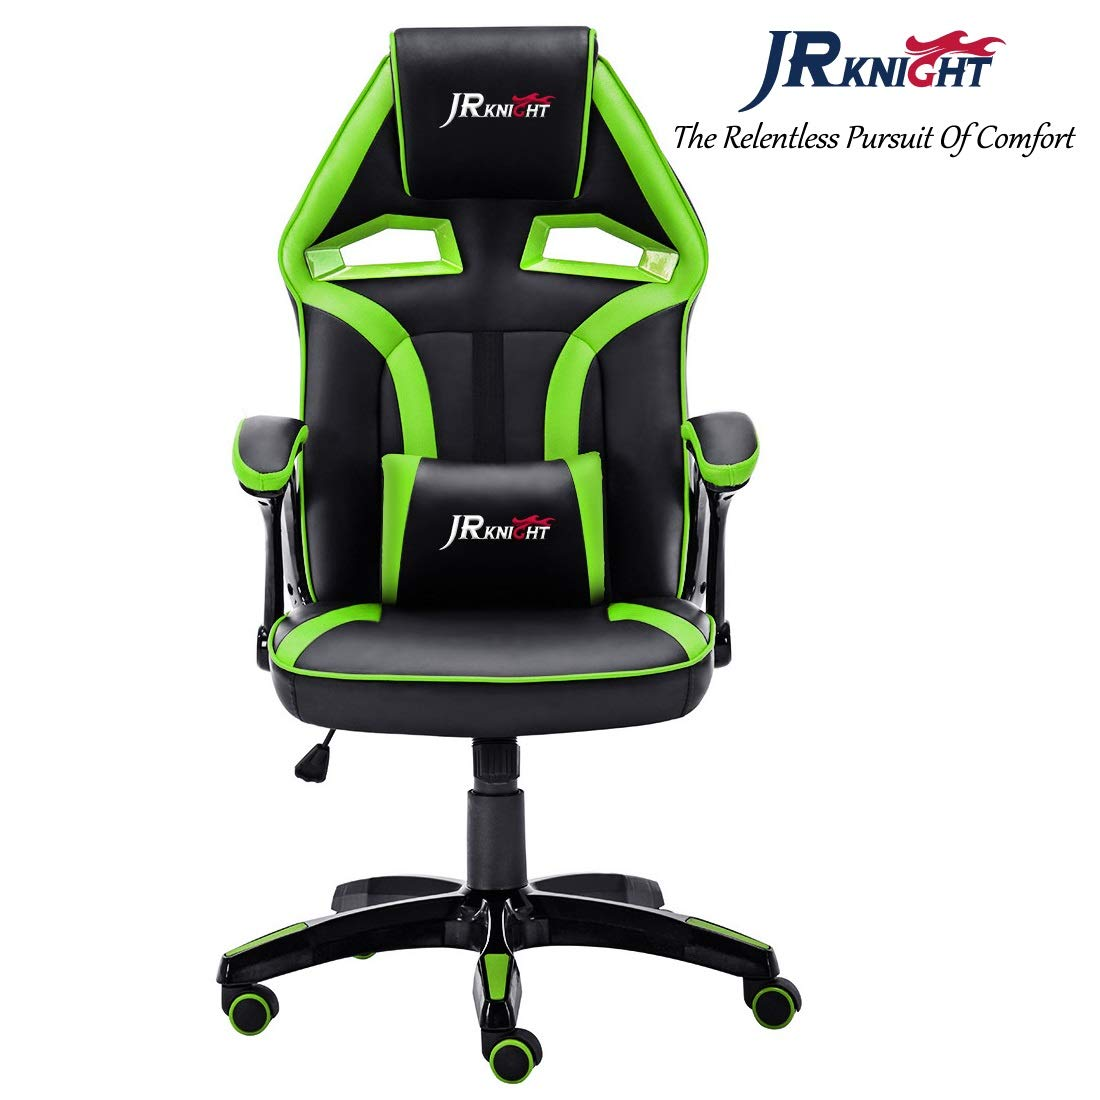 JR Knight - Silla estilo deportivo, oficina en casa, gaming, silla giratoria exclusiva de piel, color Black&Green: Amazon.es: Hogar